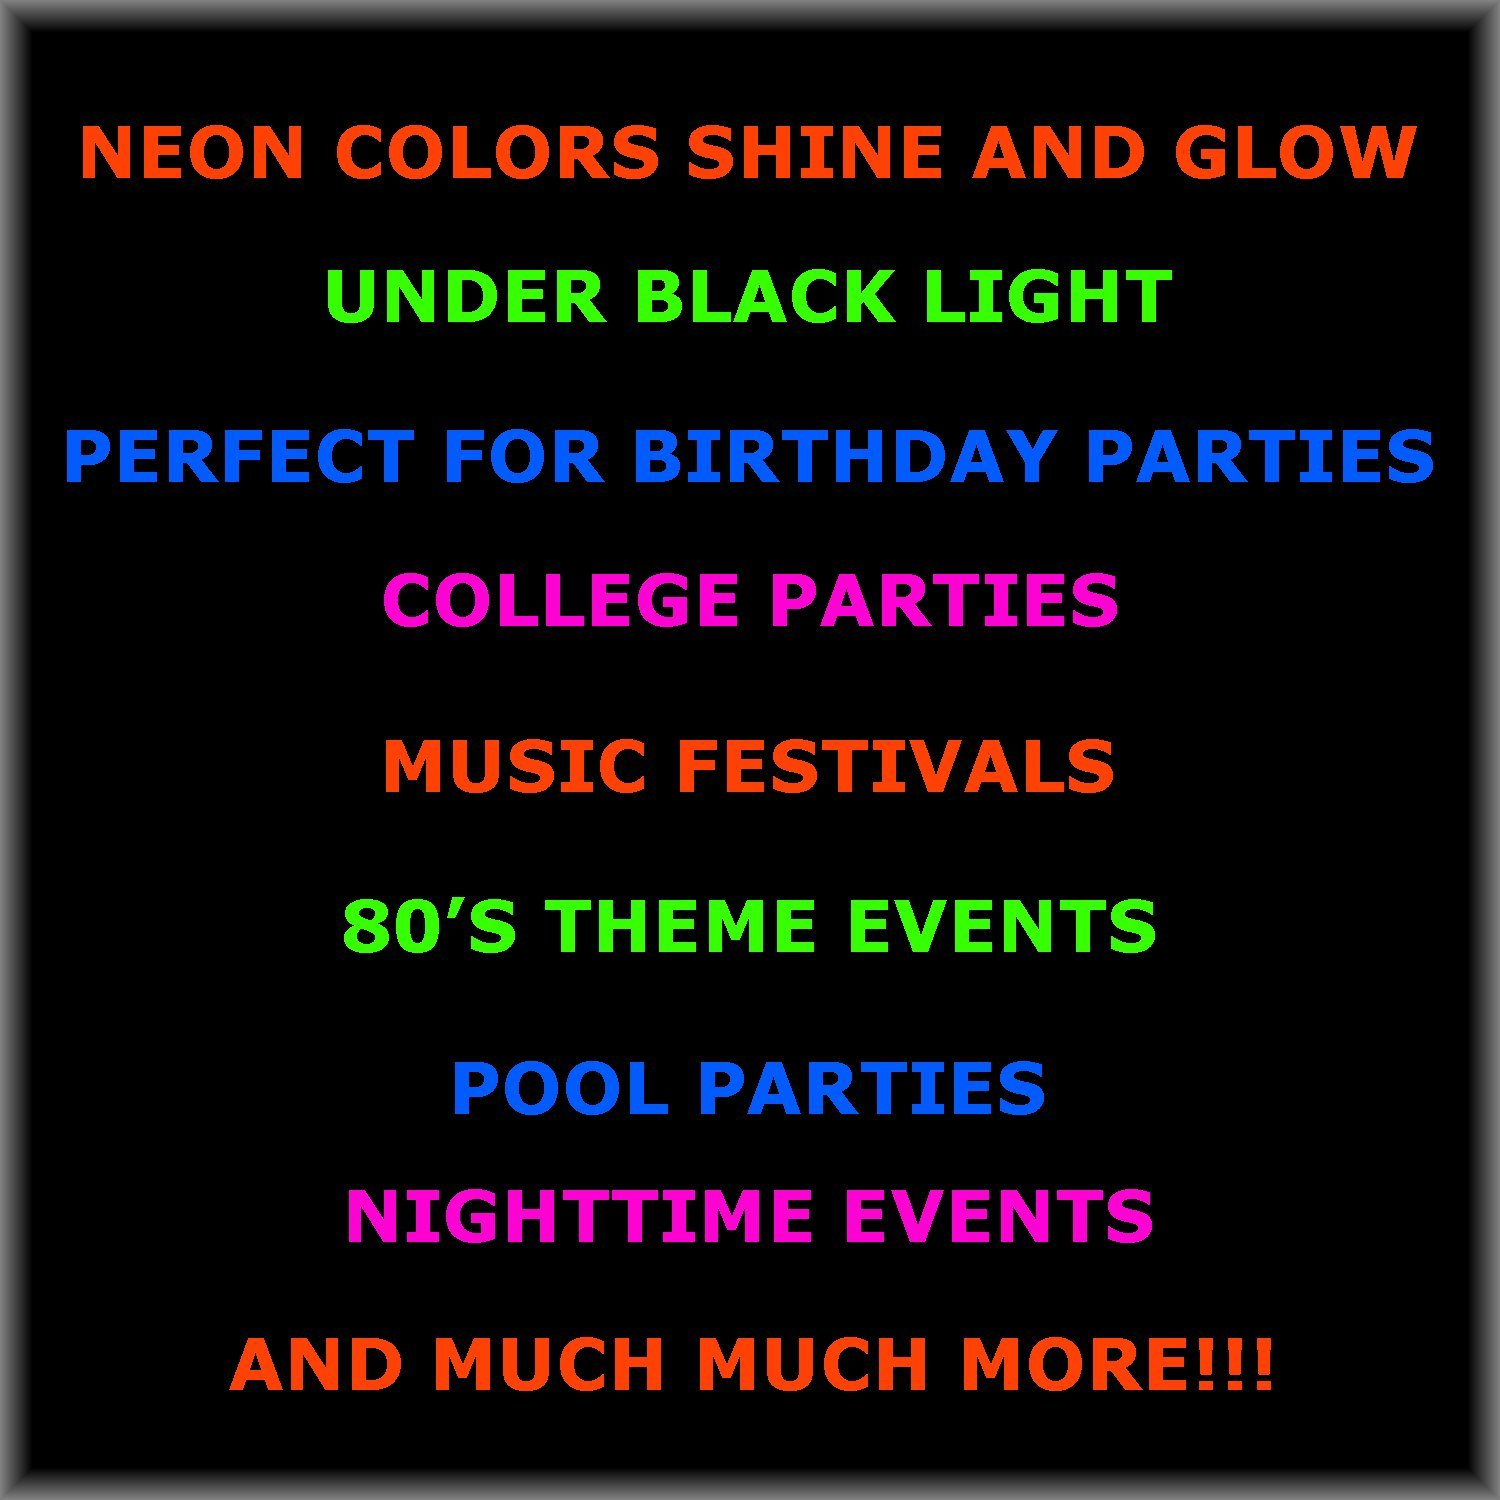 Neon Party Cups - 96 Pack - 48 Soft 18 OZ Beer Cups and 48 Hard plastic 1 OZ Shot Glasses - UV Reactive Blacklight Colors - Pink, Green, Blue, Orange - Birthdays, Clubs, 80s Festivals, Beer Pong, Etc. by HeroFiber